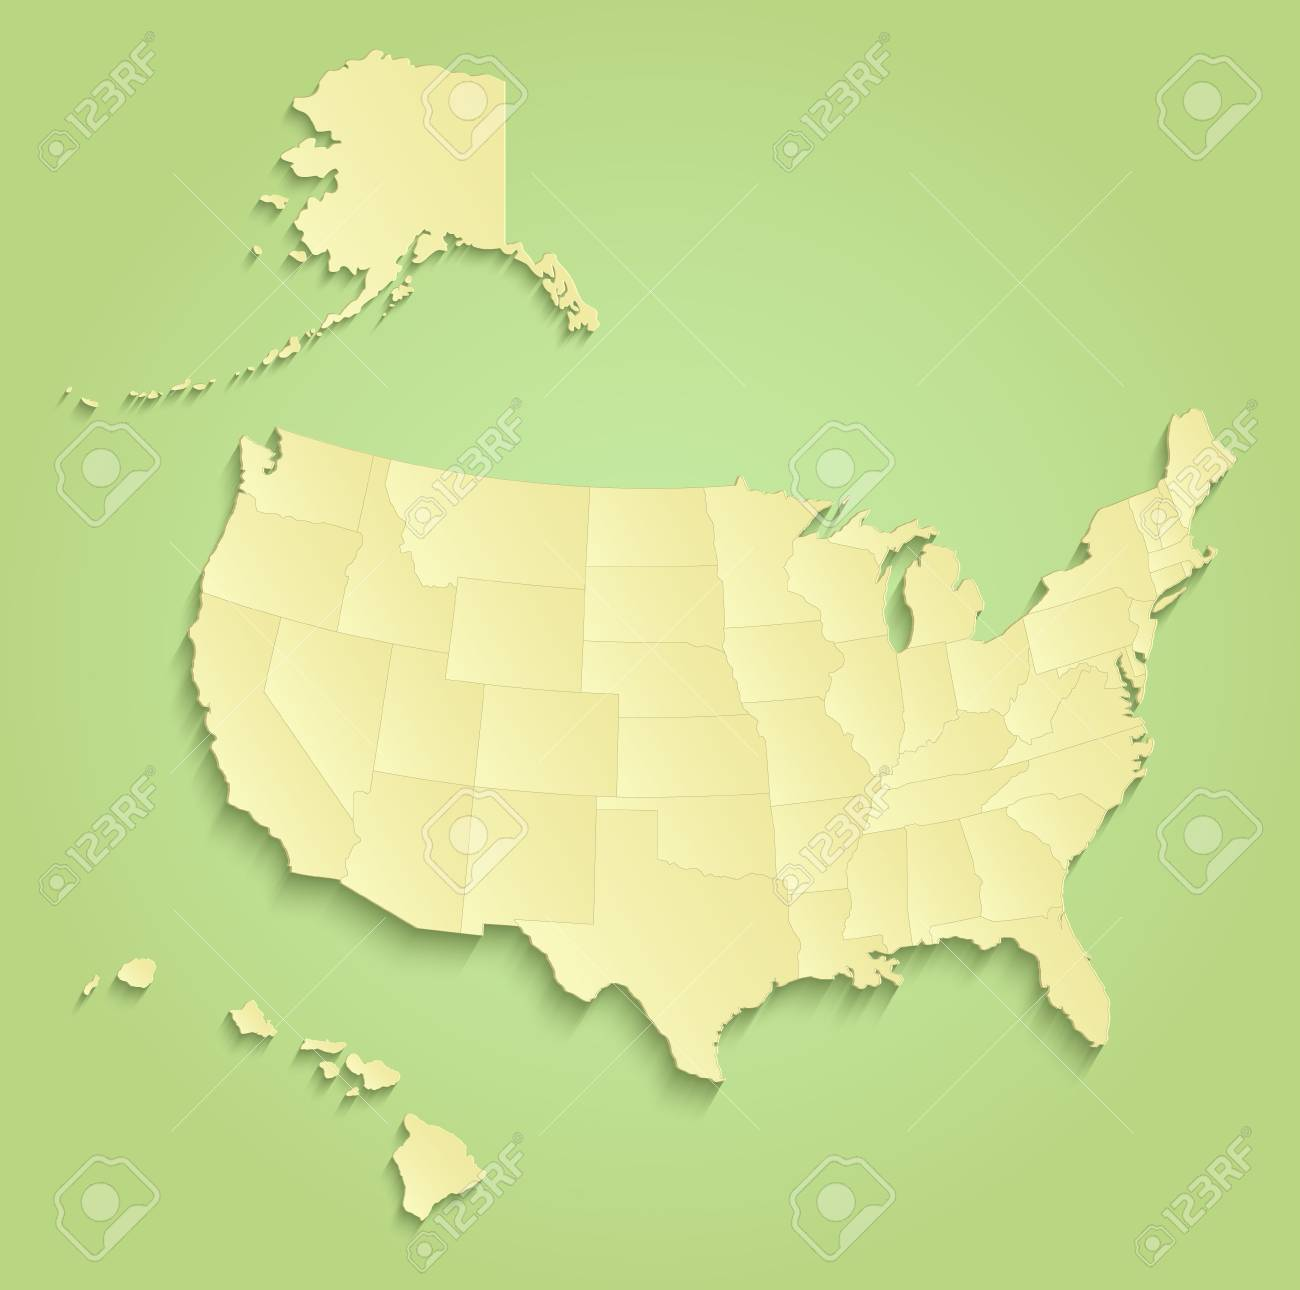 United States With Alaska And Hawaii Maps Separate Individual ...